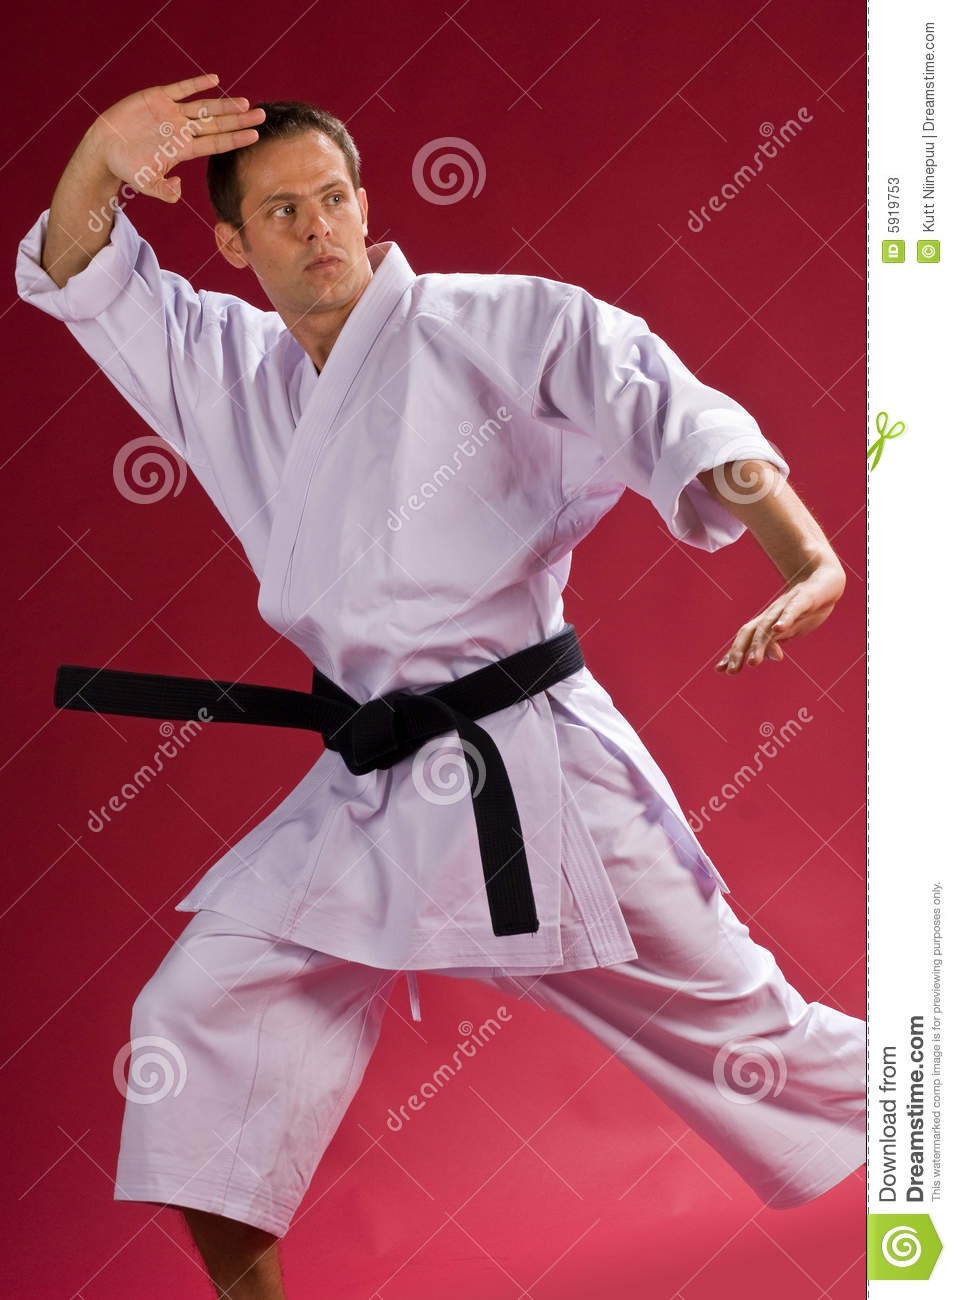 Karate Chop Stock Photos - Image: 5919753